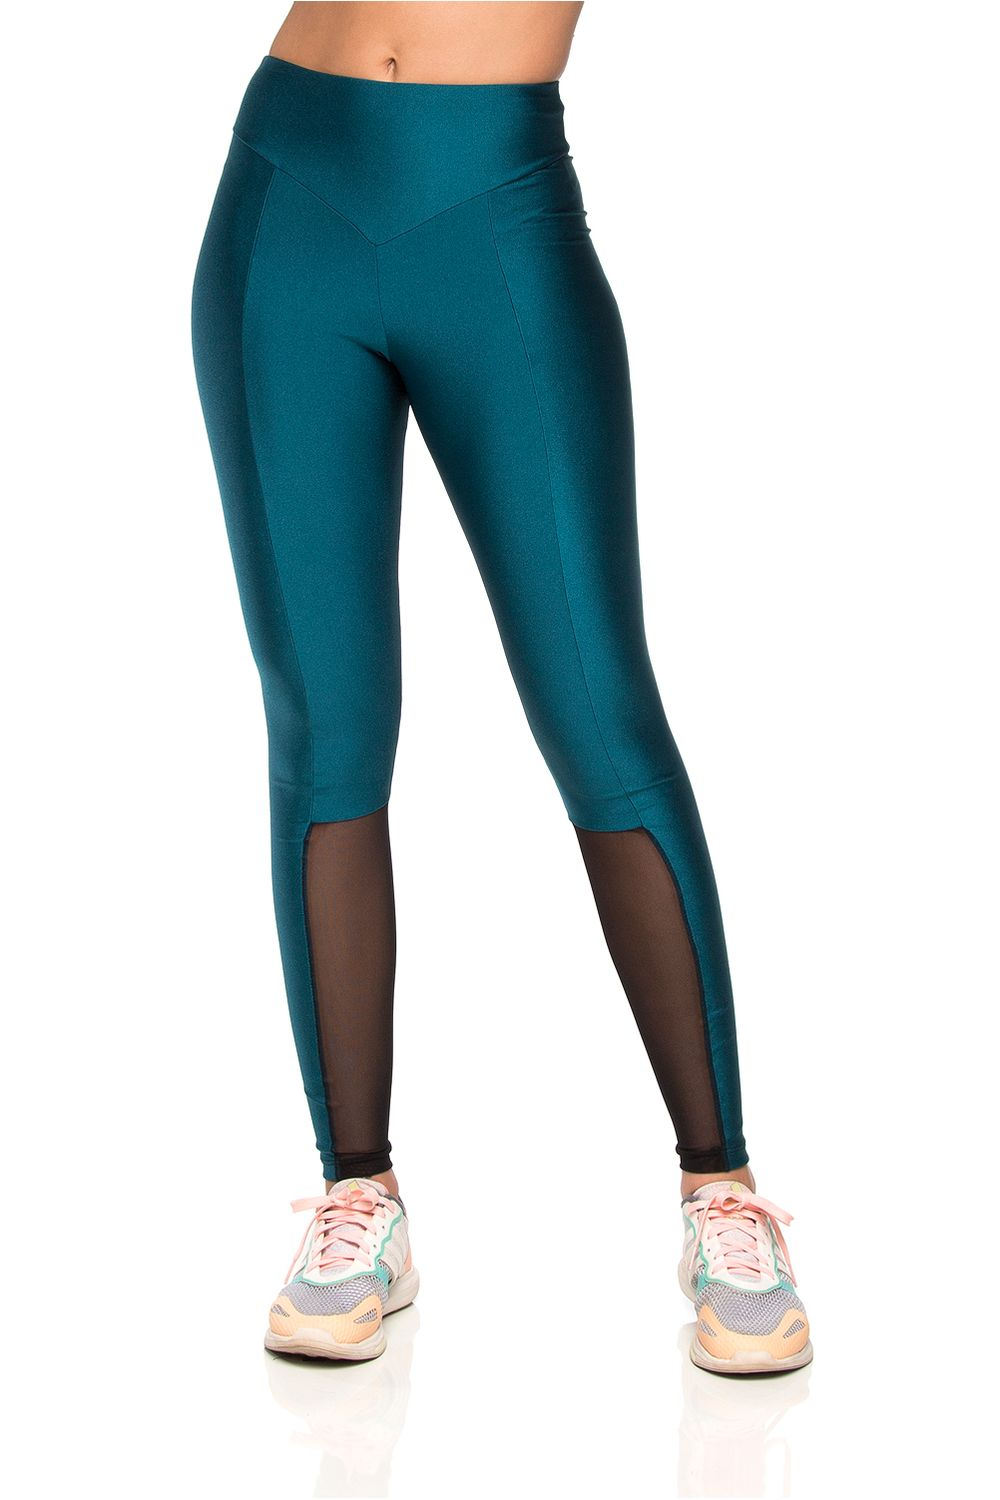 legging-fitness-ballet-tule-interno-3-